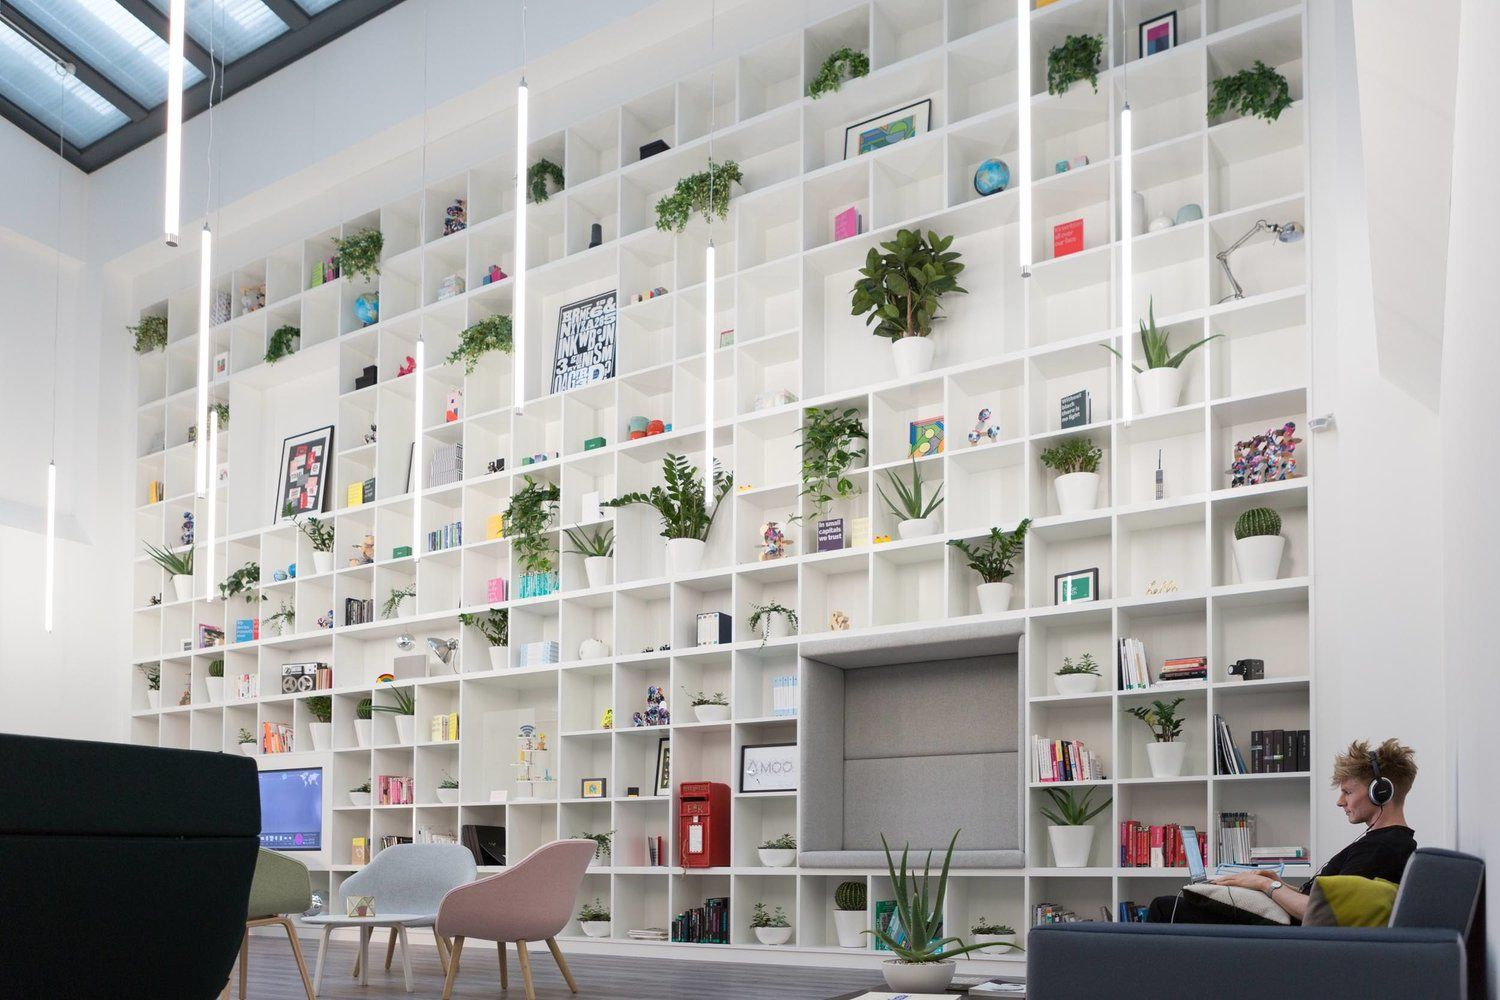 Moo Trifle Bespoke Design Consultancy Workspace Design Commercial Interior Design Workplace Design